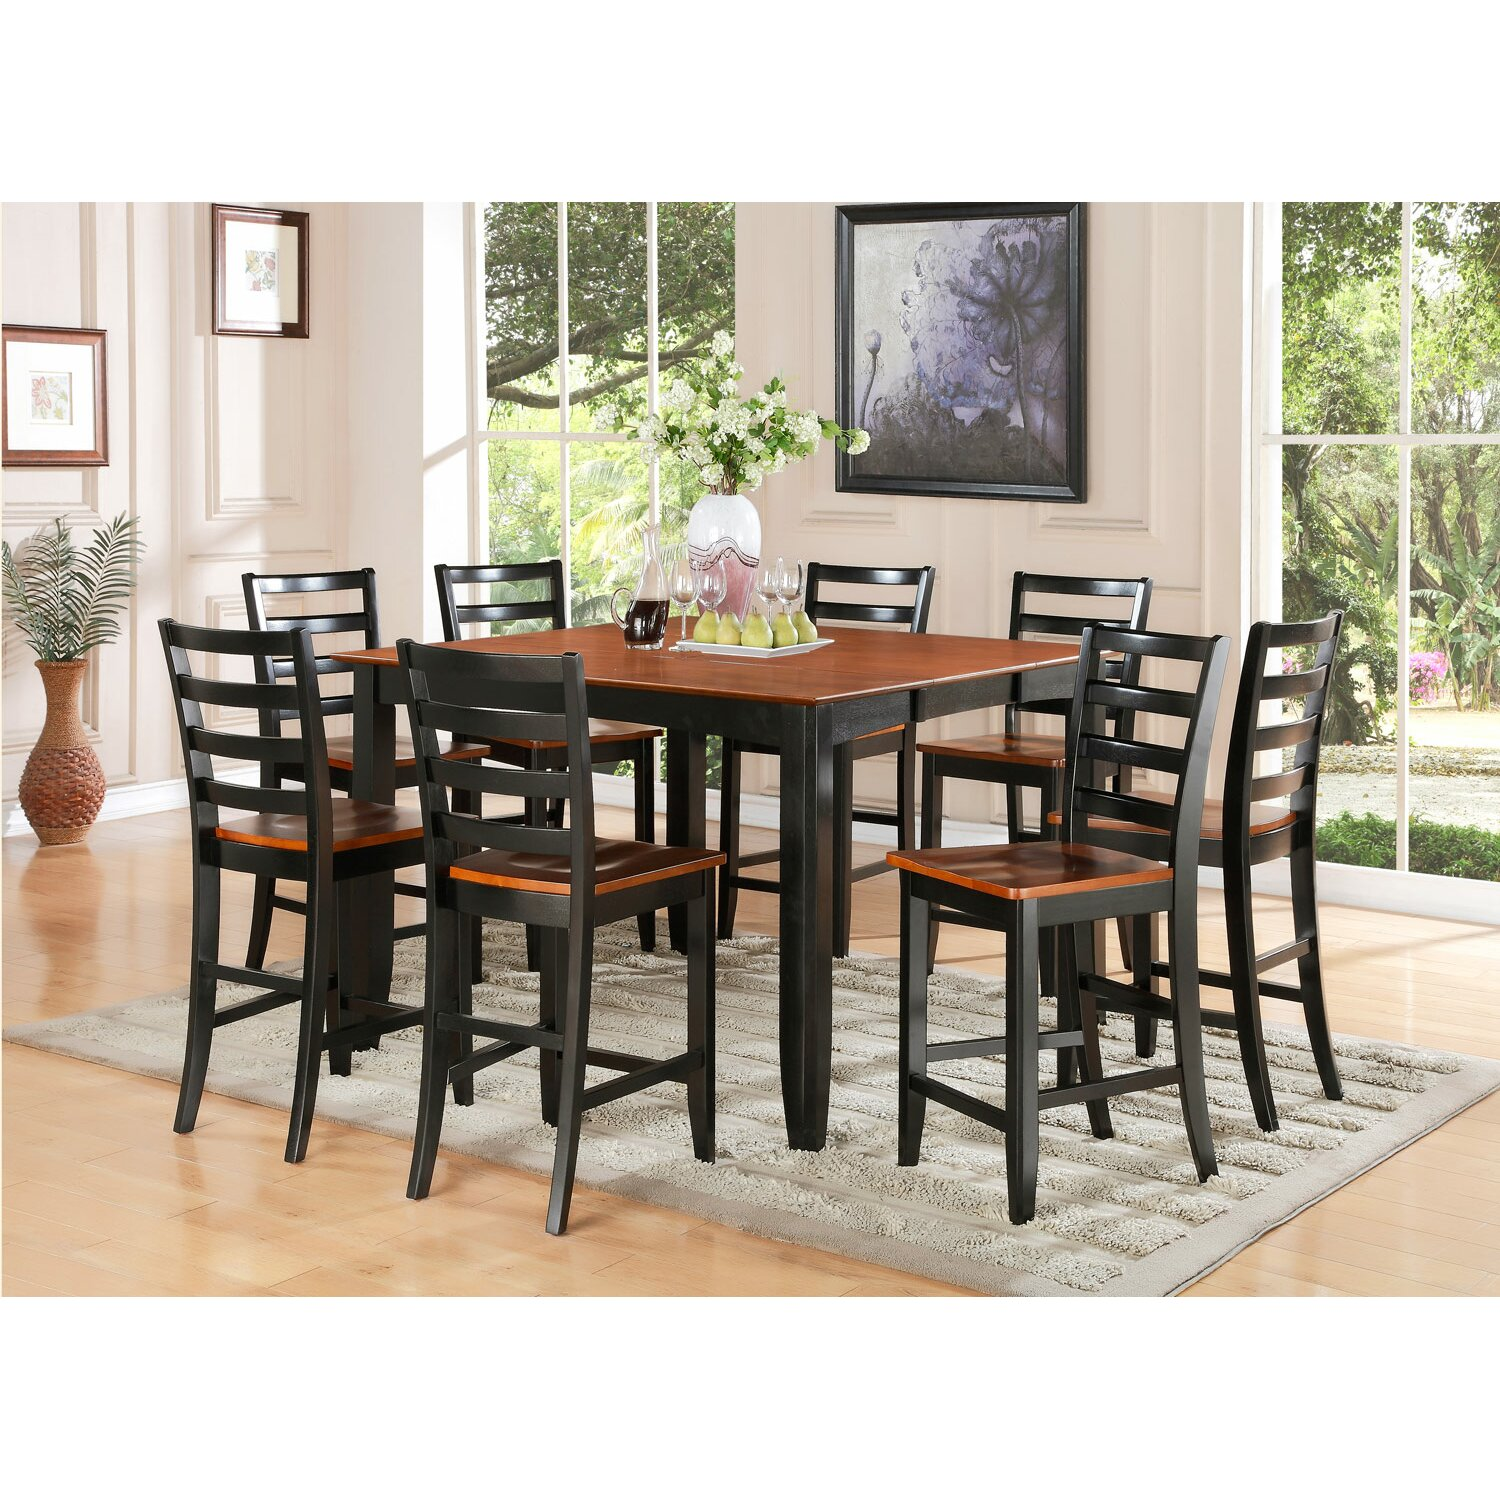 Wooden Importers Parfait 9 Piece Counter Height Dining Set ...